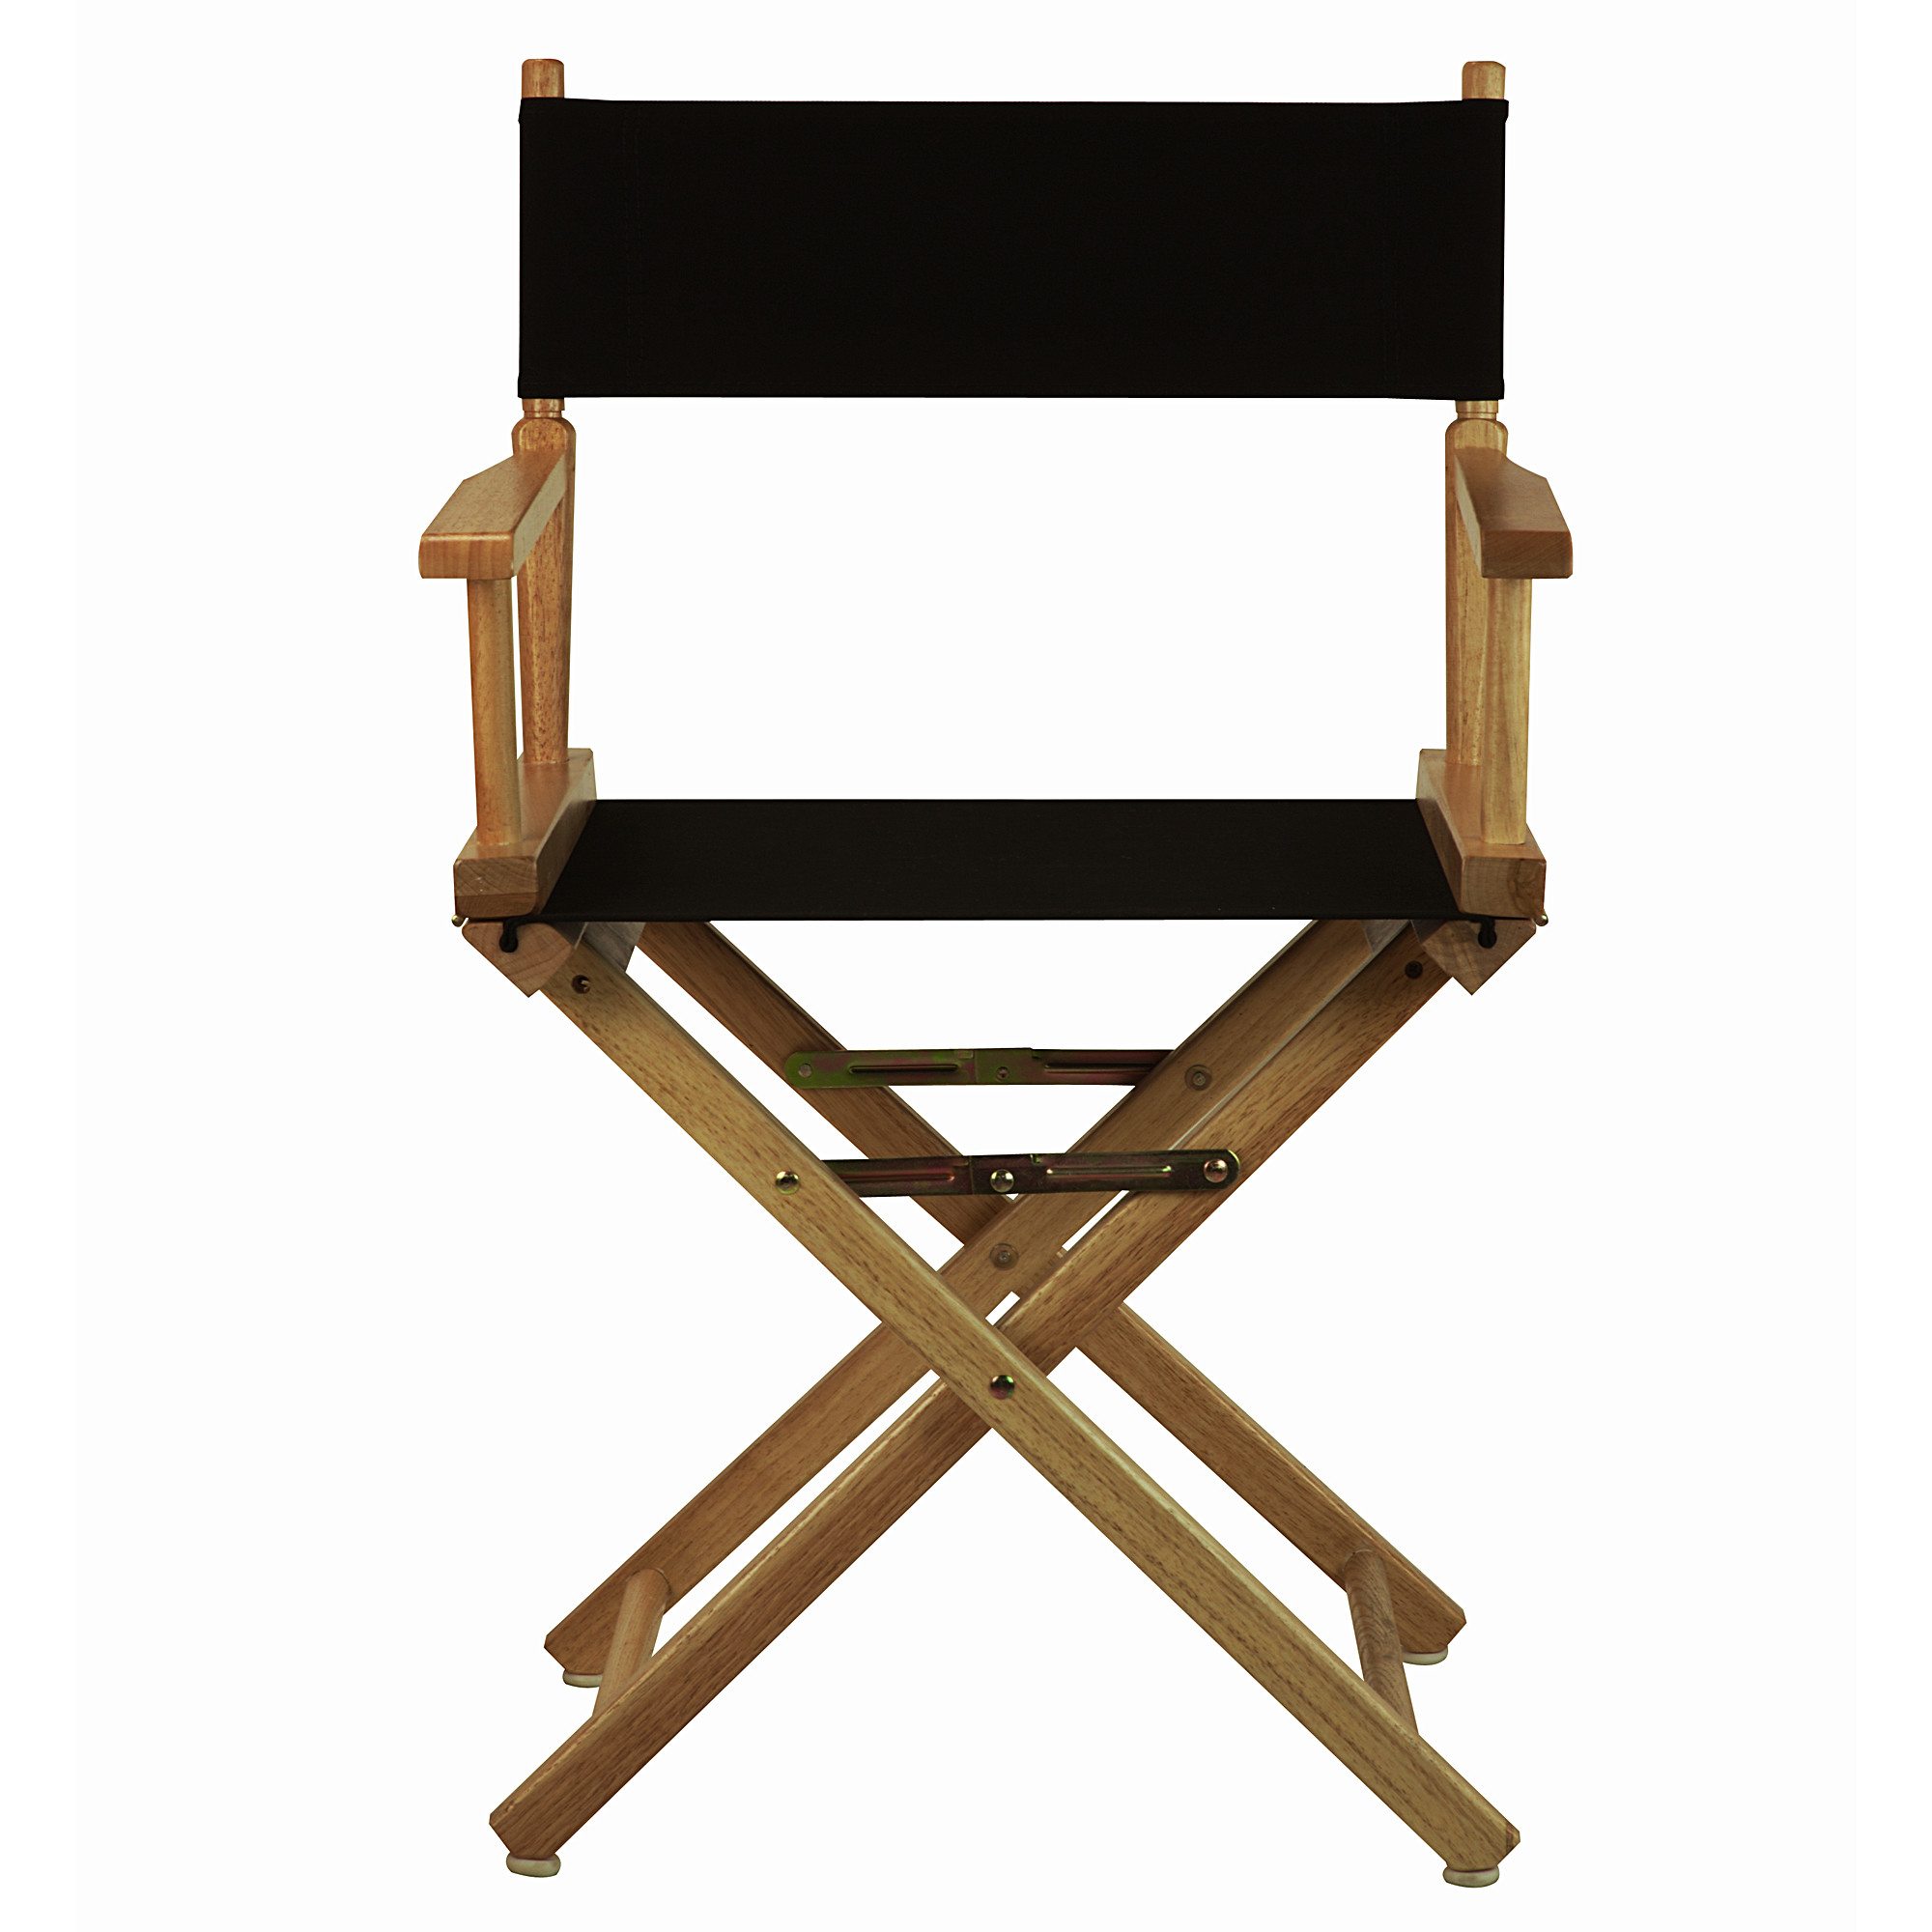 Attractive Directors Chair Replacement Canvas for Best Director Chair Ideas: Striped Directors Chairs | Directors Chairs Replacement Canvas | Directors Chair Replacement Canvas